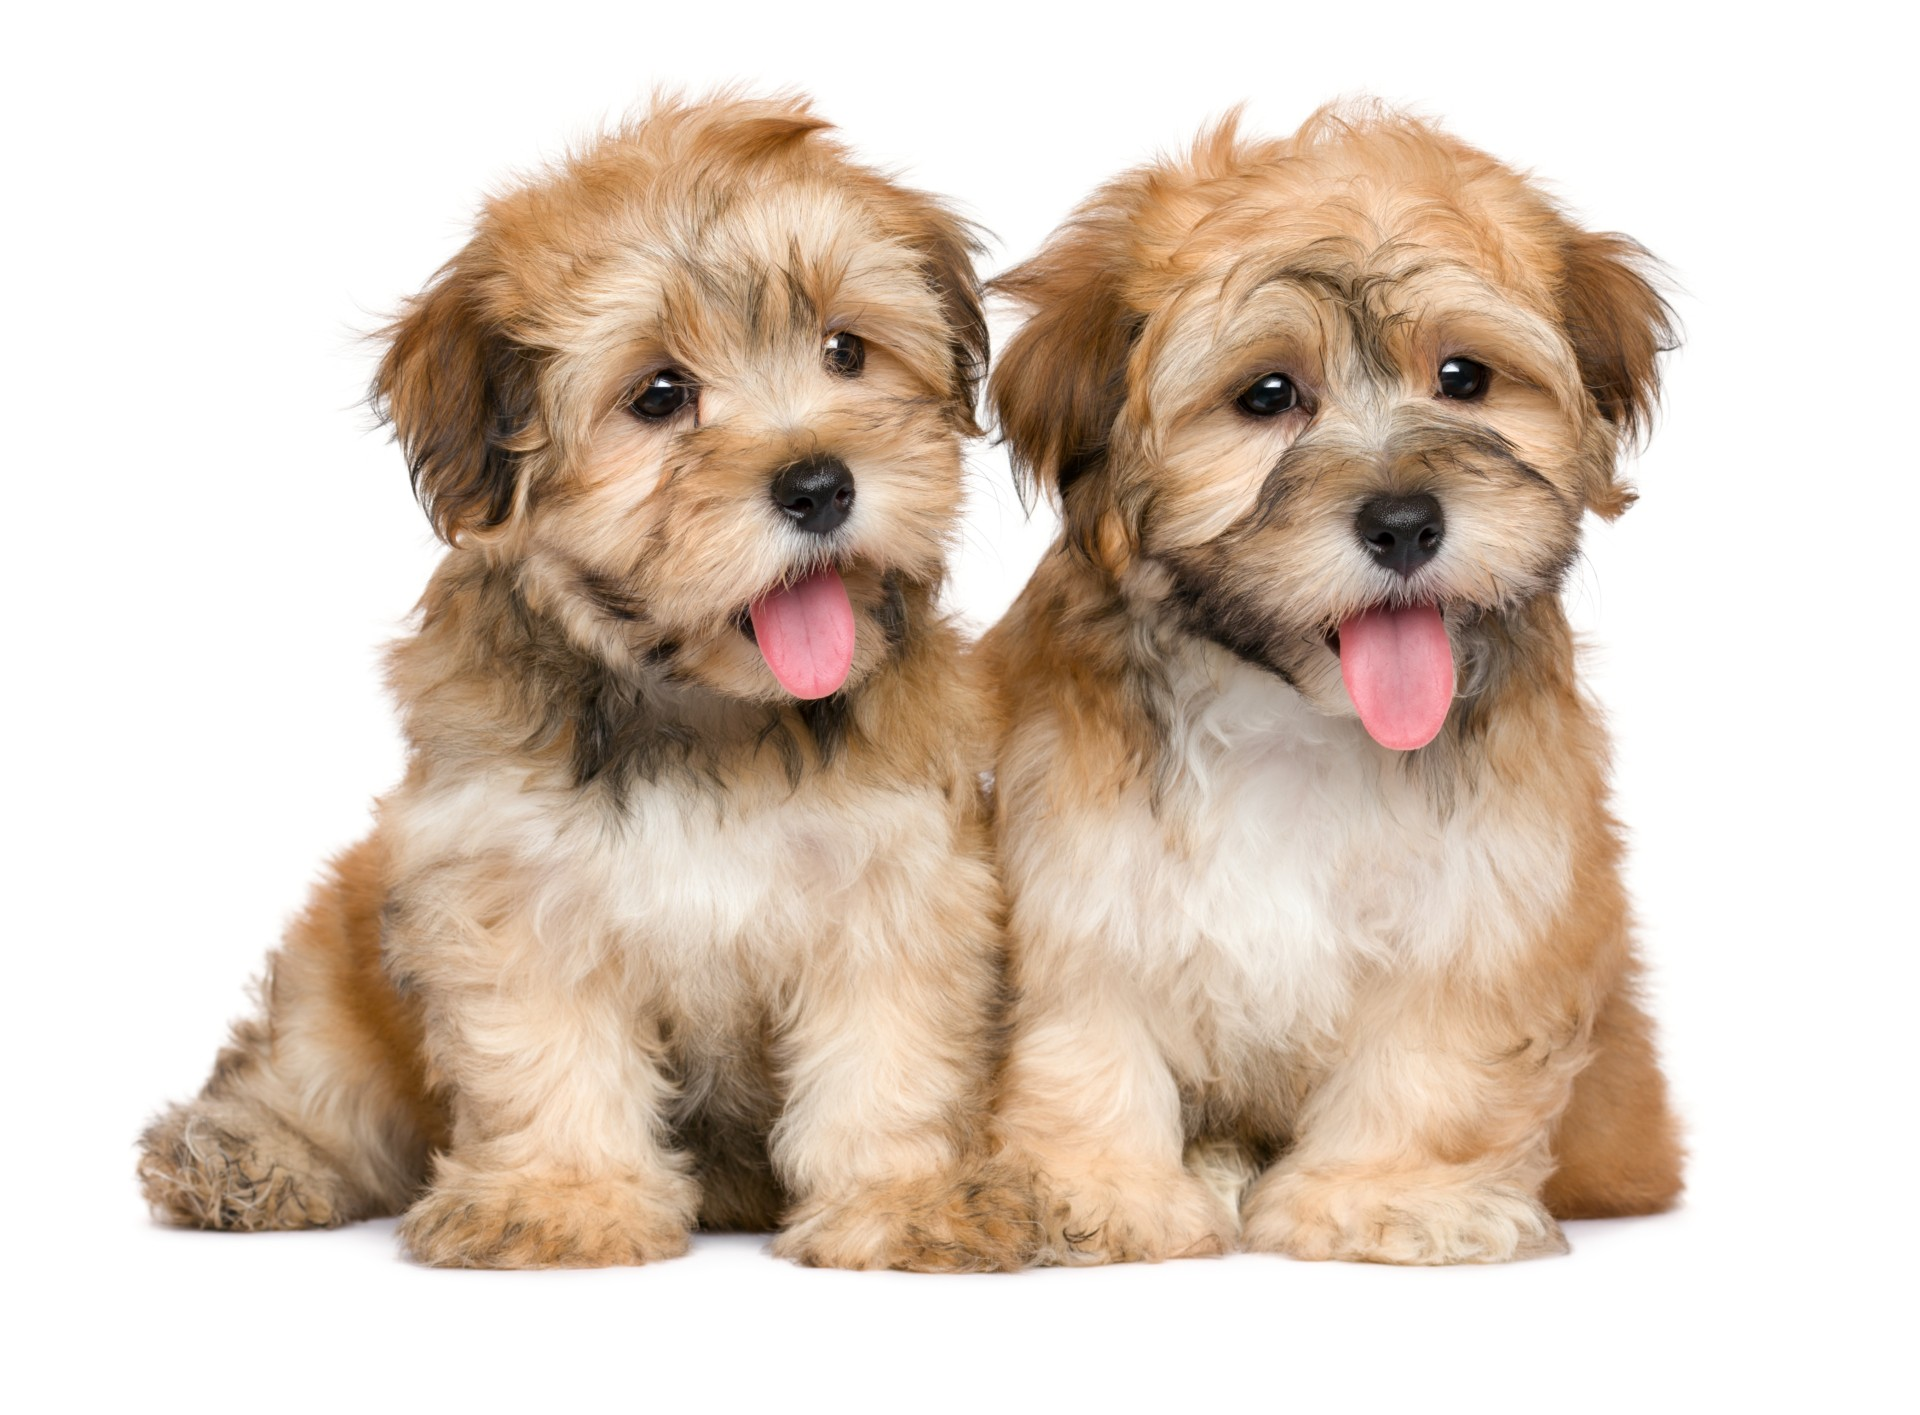 Cute puppies on puppies for sale page.